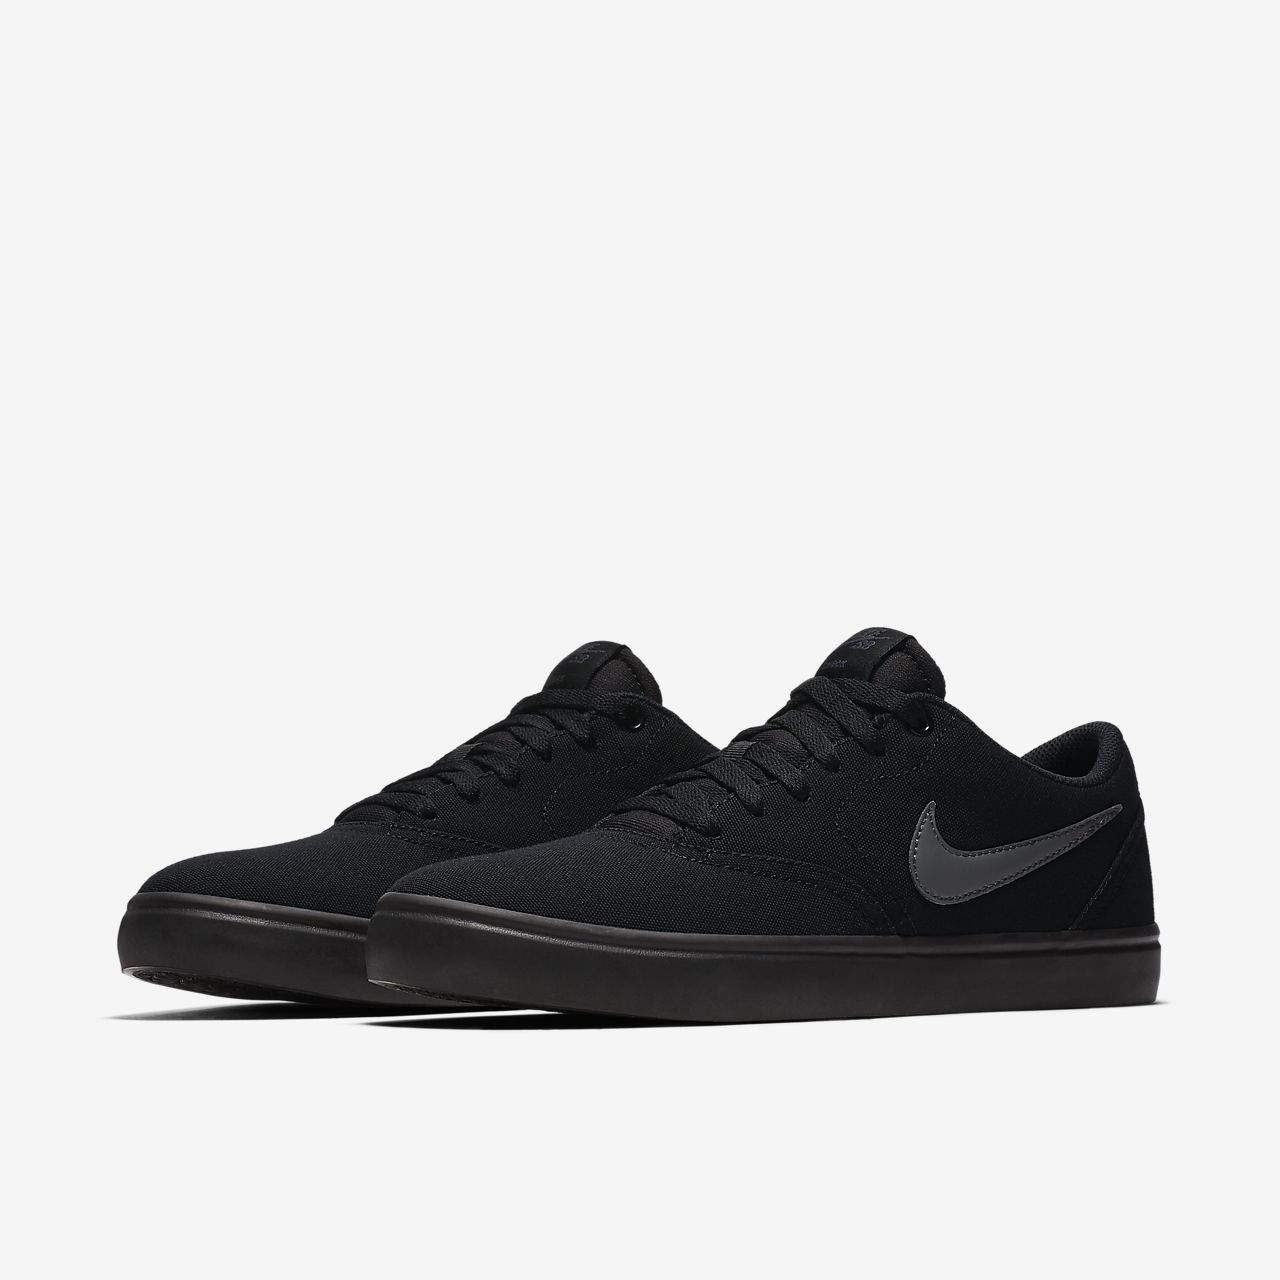 eaffc1add35 Calzado de skateboarding para hombre Nike SB Check Solarsoft Canvas ...